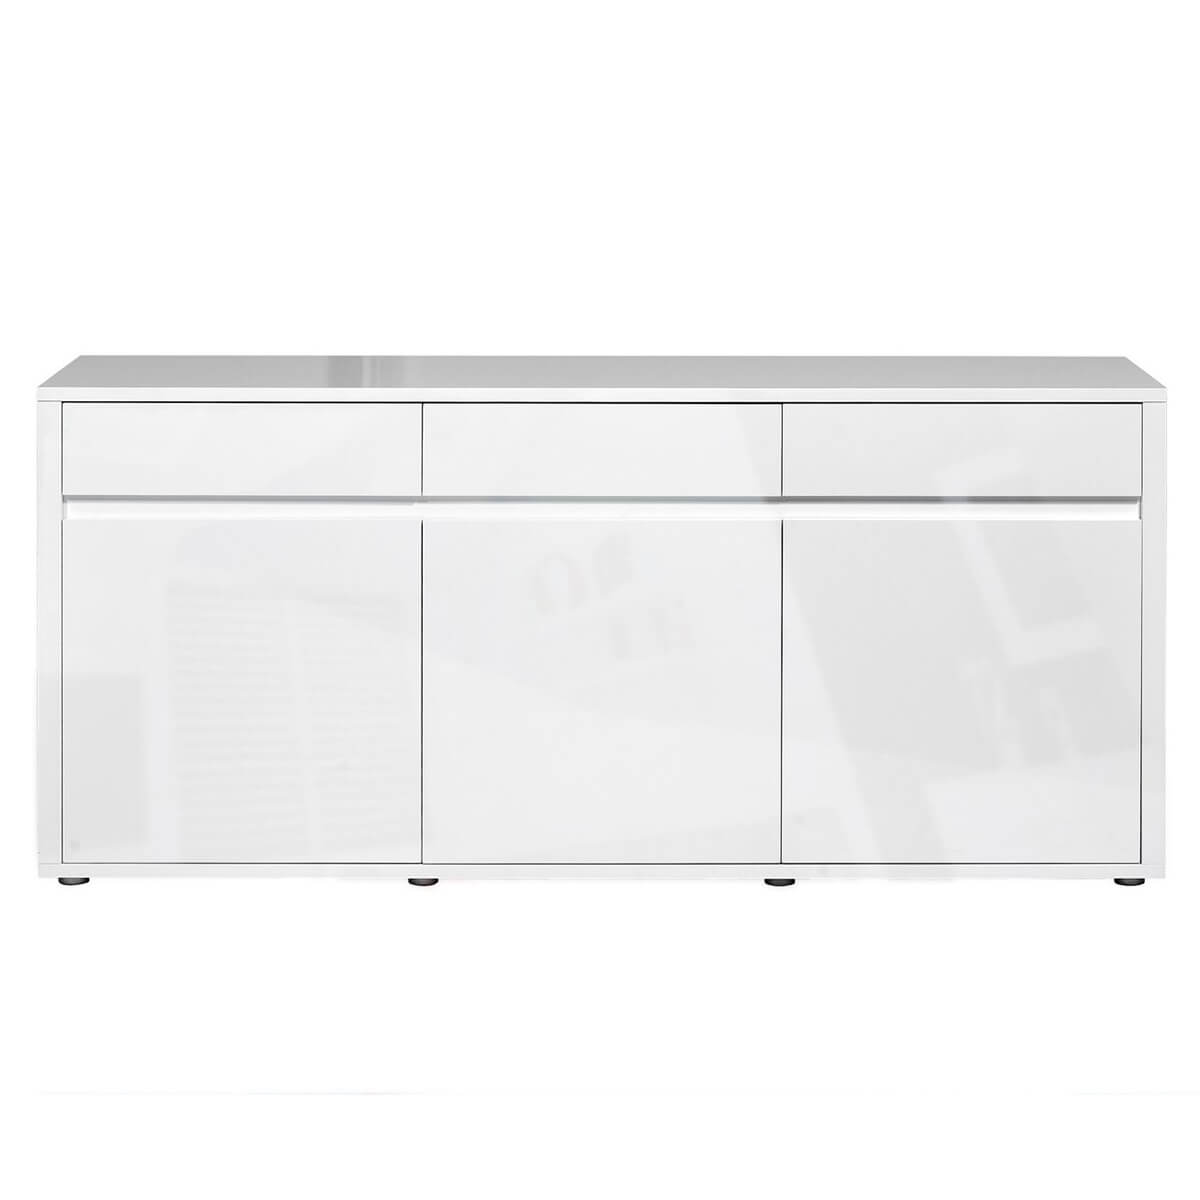 Urbana White High Gloss Sideboard 3 Drawer 3 Door Fads